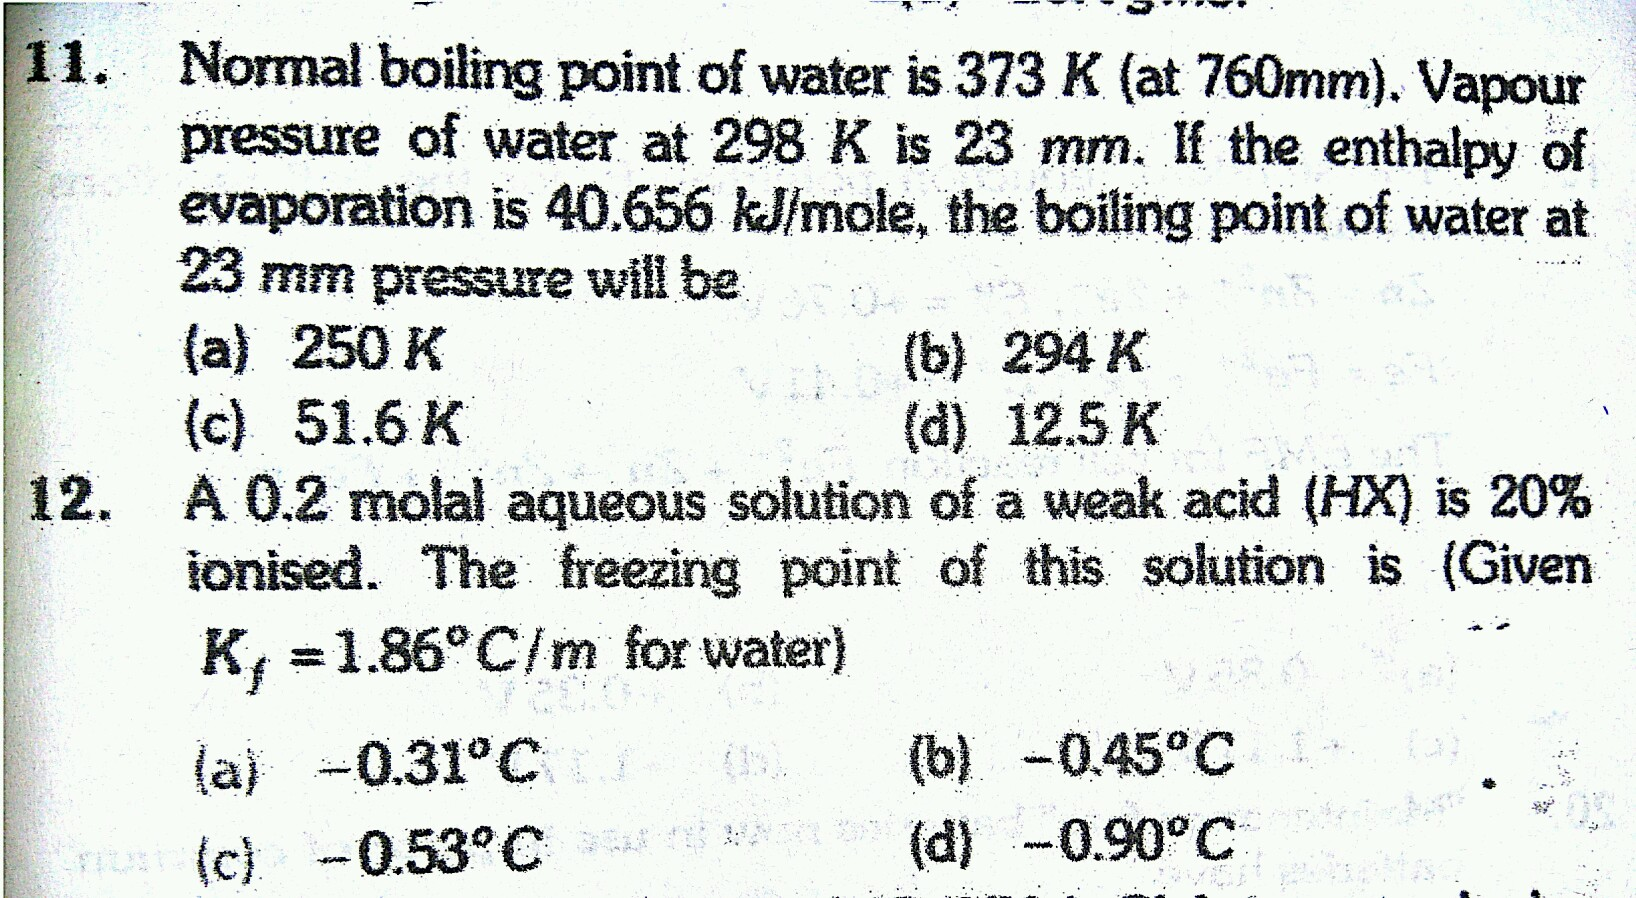 depression of freezing point Questions and Answers - TopperLearning